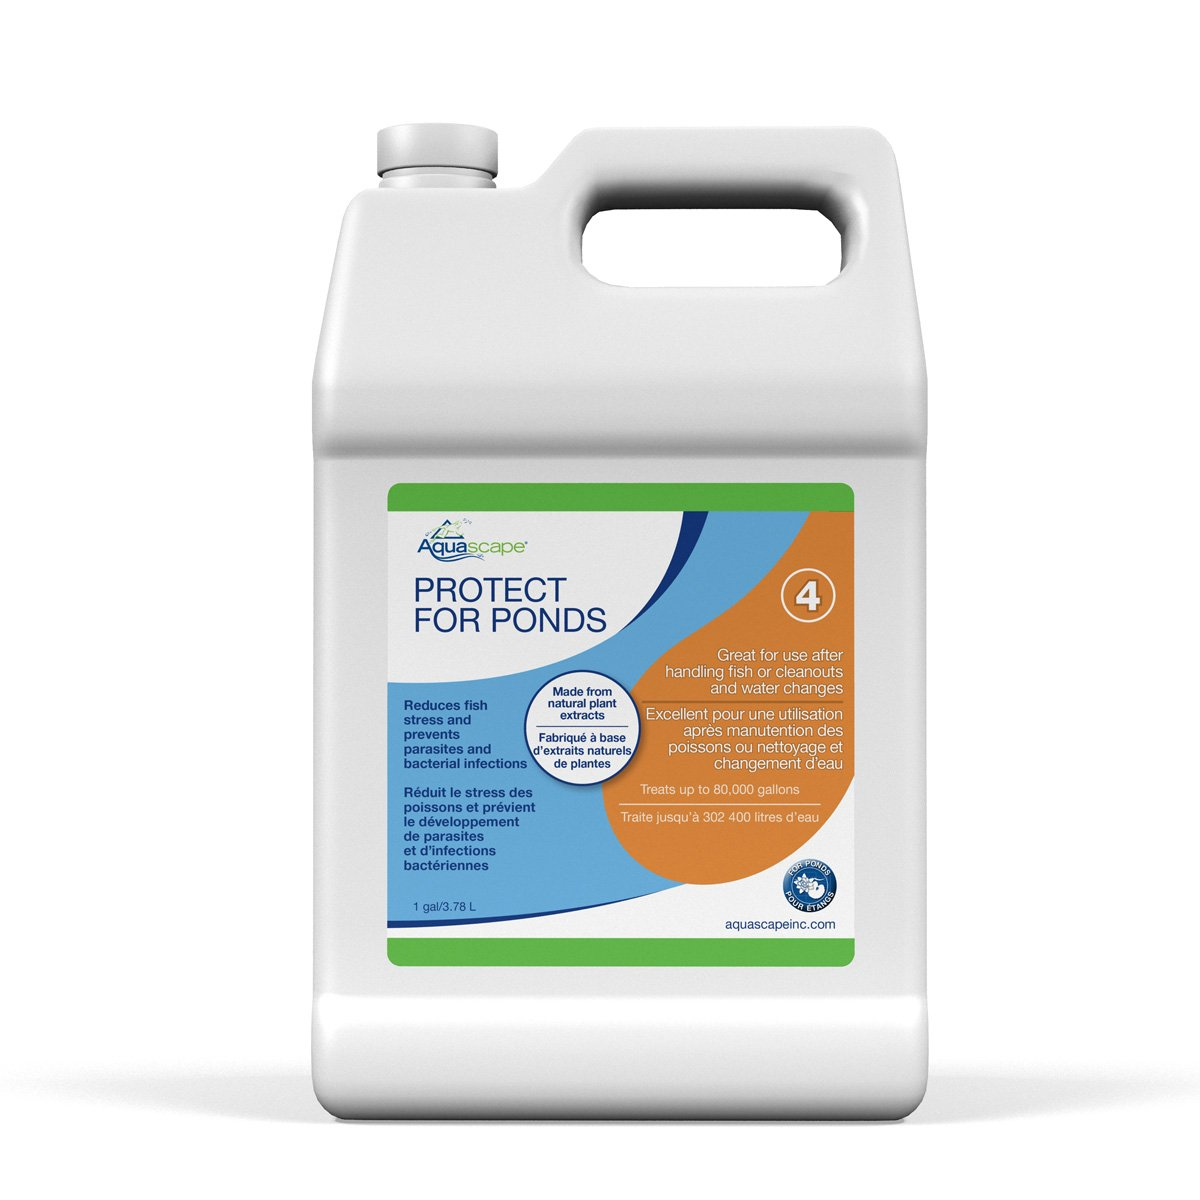 Aquascape PROTECT Water Treatment Koi and Fish Ponds, All-natural Formulation Effectively Reduces Fish Stress and Promotes Fish Health,  1 gallon / 3.78 L  96072 by Aquascape